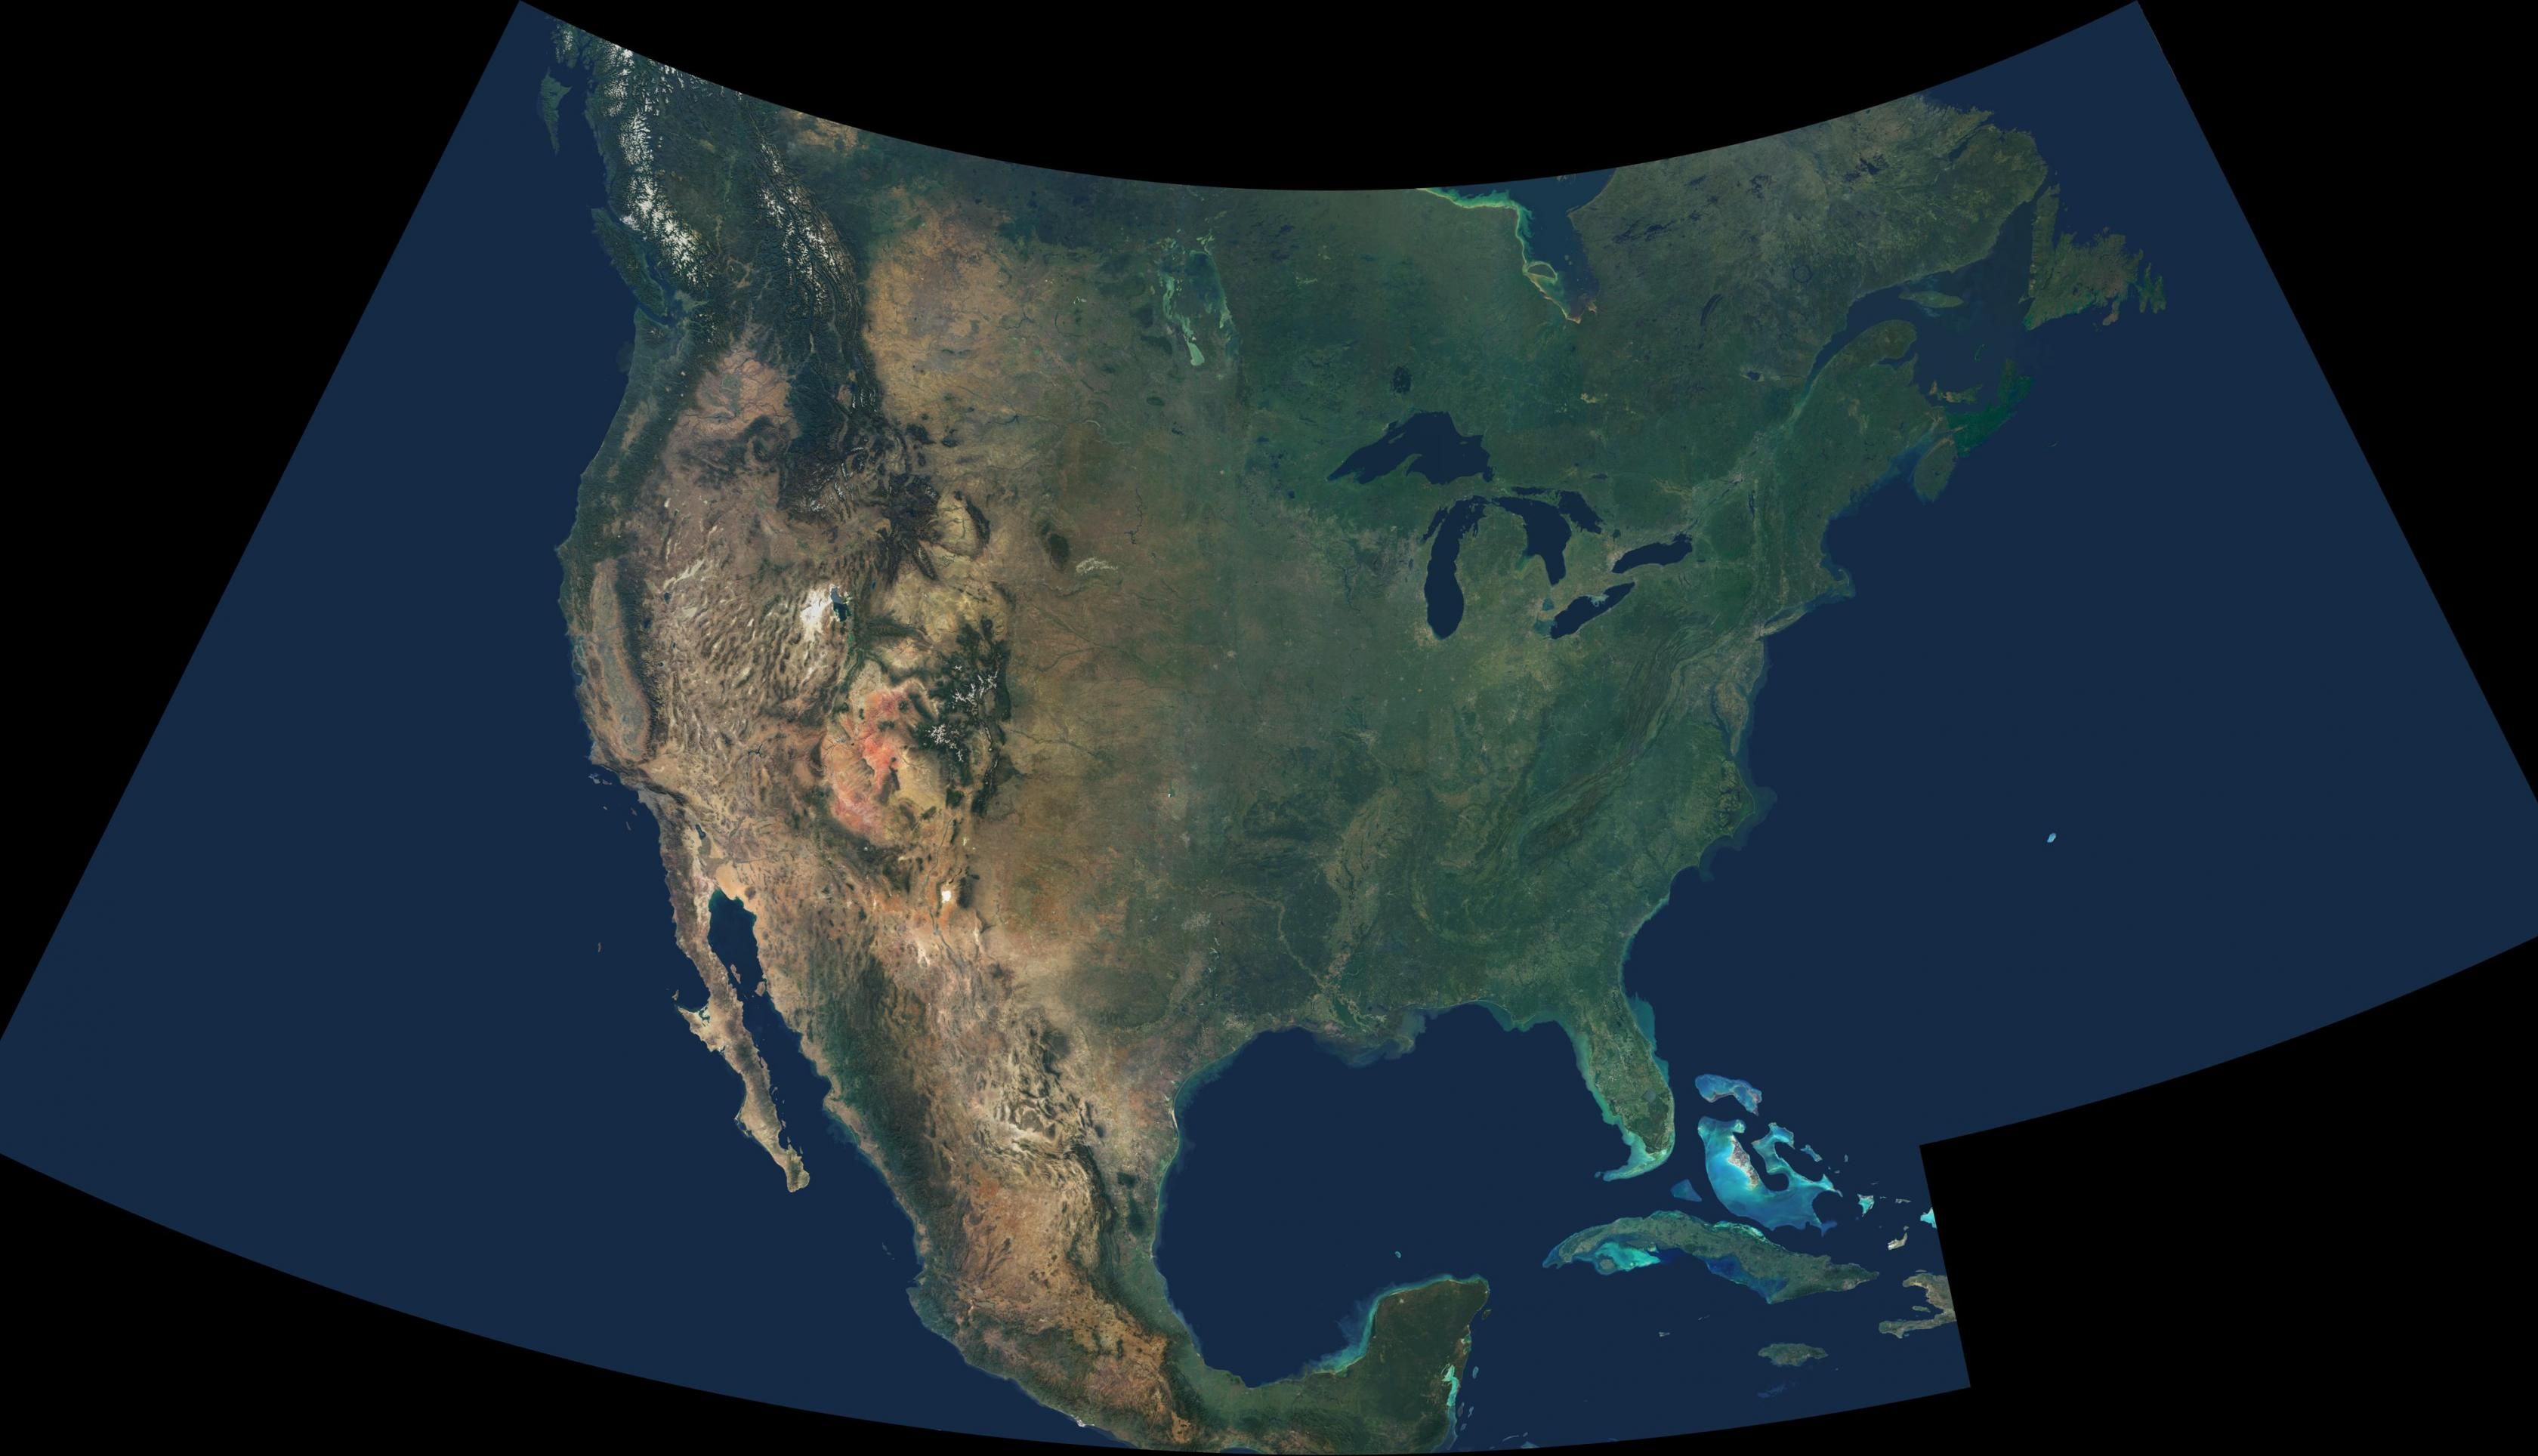 A natural-color image showing cloud-free data from over 500 satellite images of the United States.